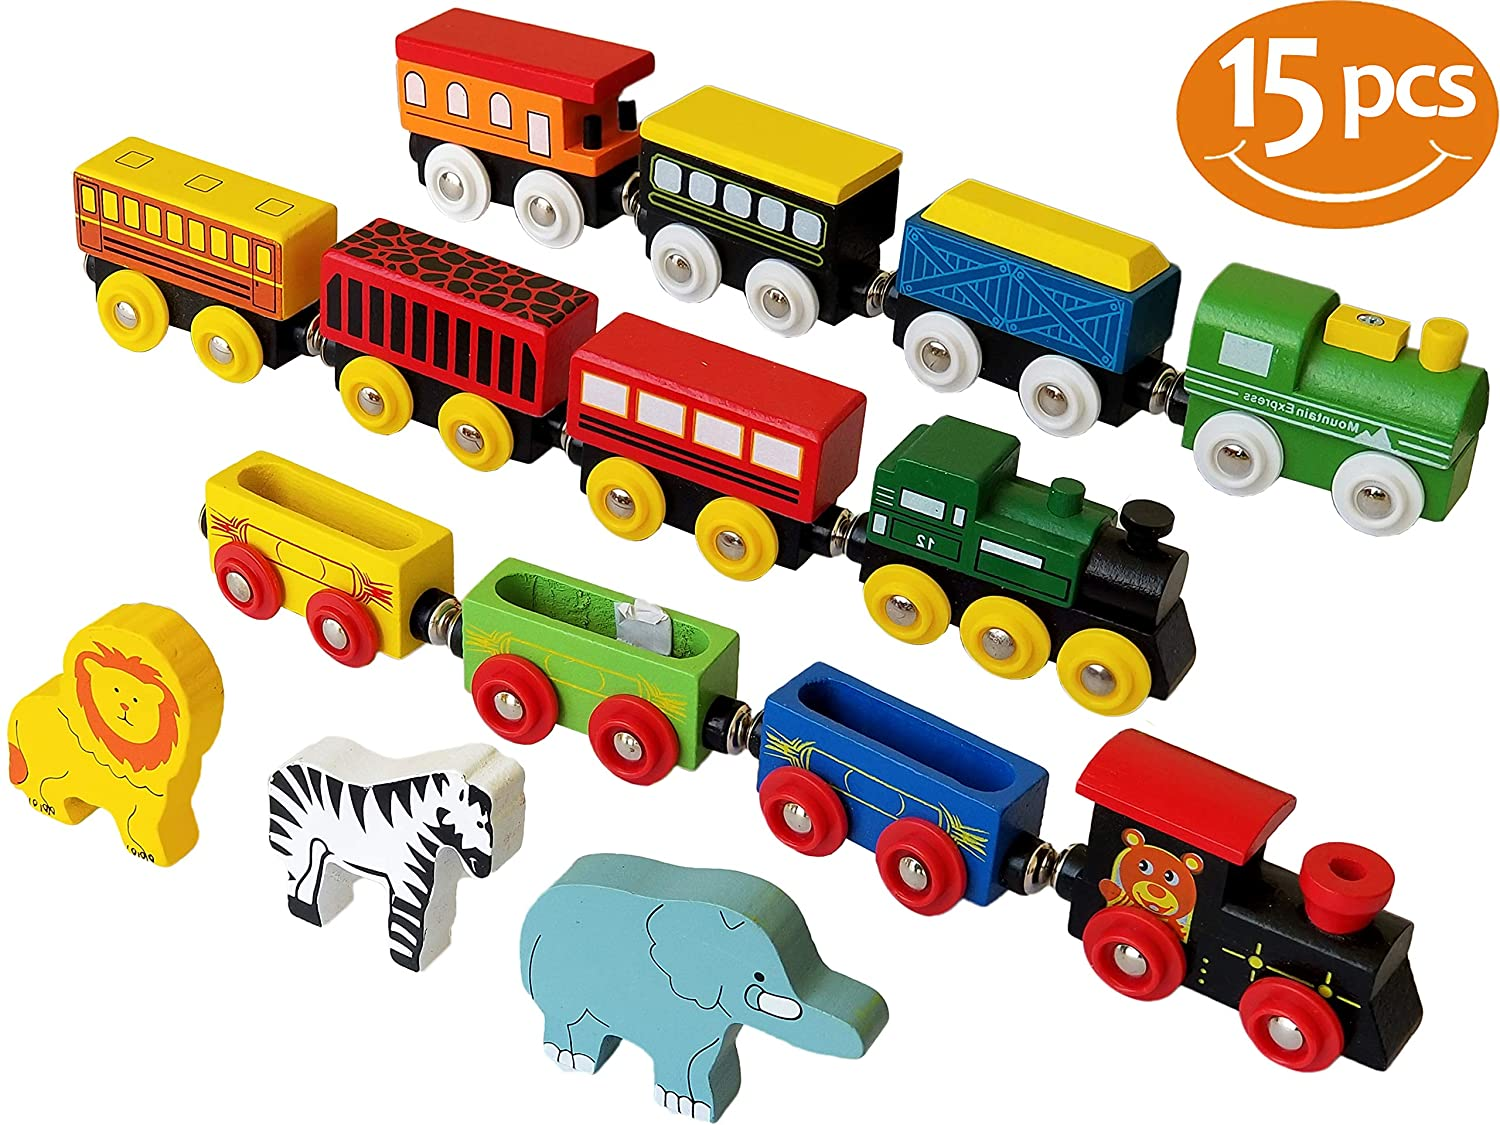 ToysOpoly Wooden Train Set 12 PCS Magnetic Engines With 3 Bonus Animals Deluxe Toys For Kids Toddler Boys and Girls Compatible to Thomas Railway Brio Tracks and Major Brands